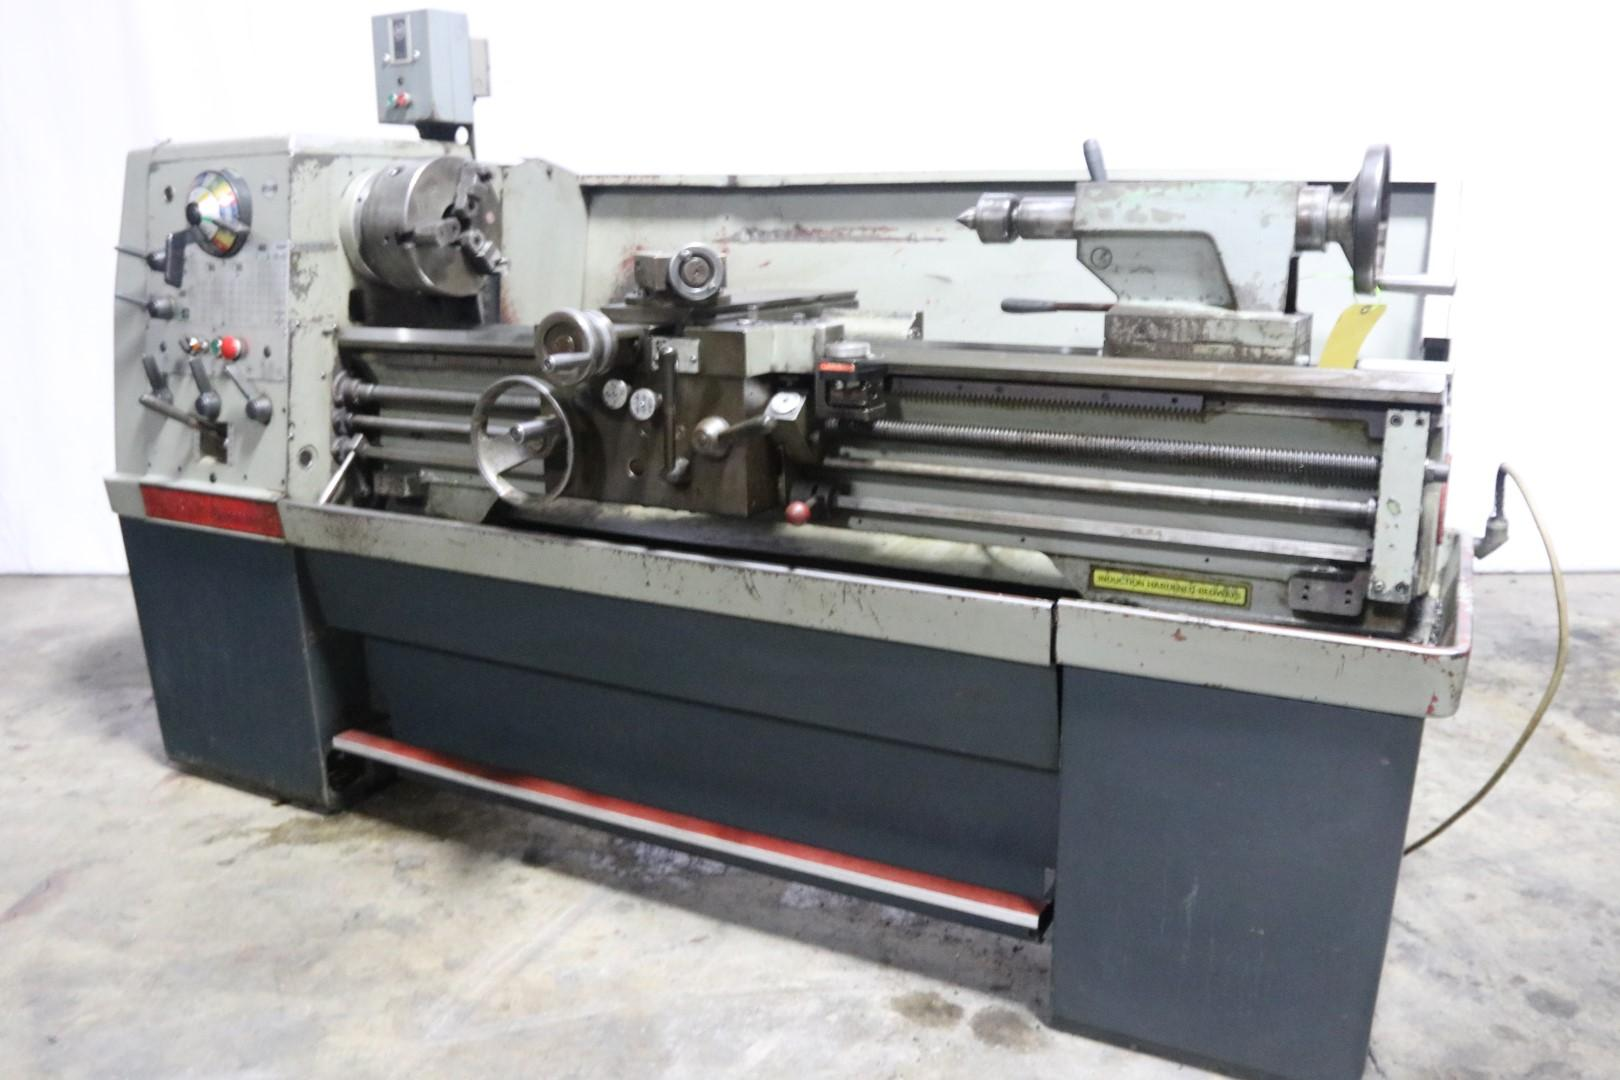 CLAUSING 15 - Lathes, Engine | Machine Hub